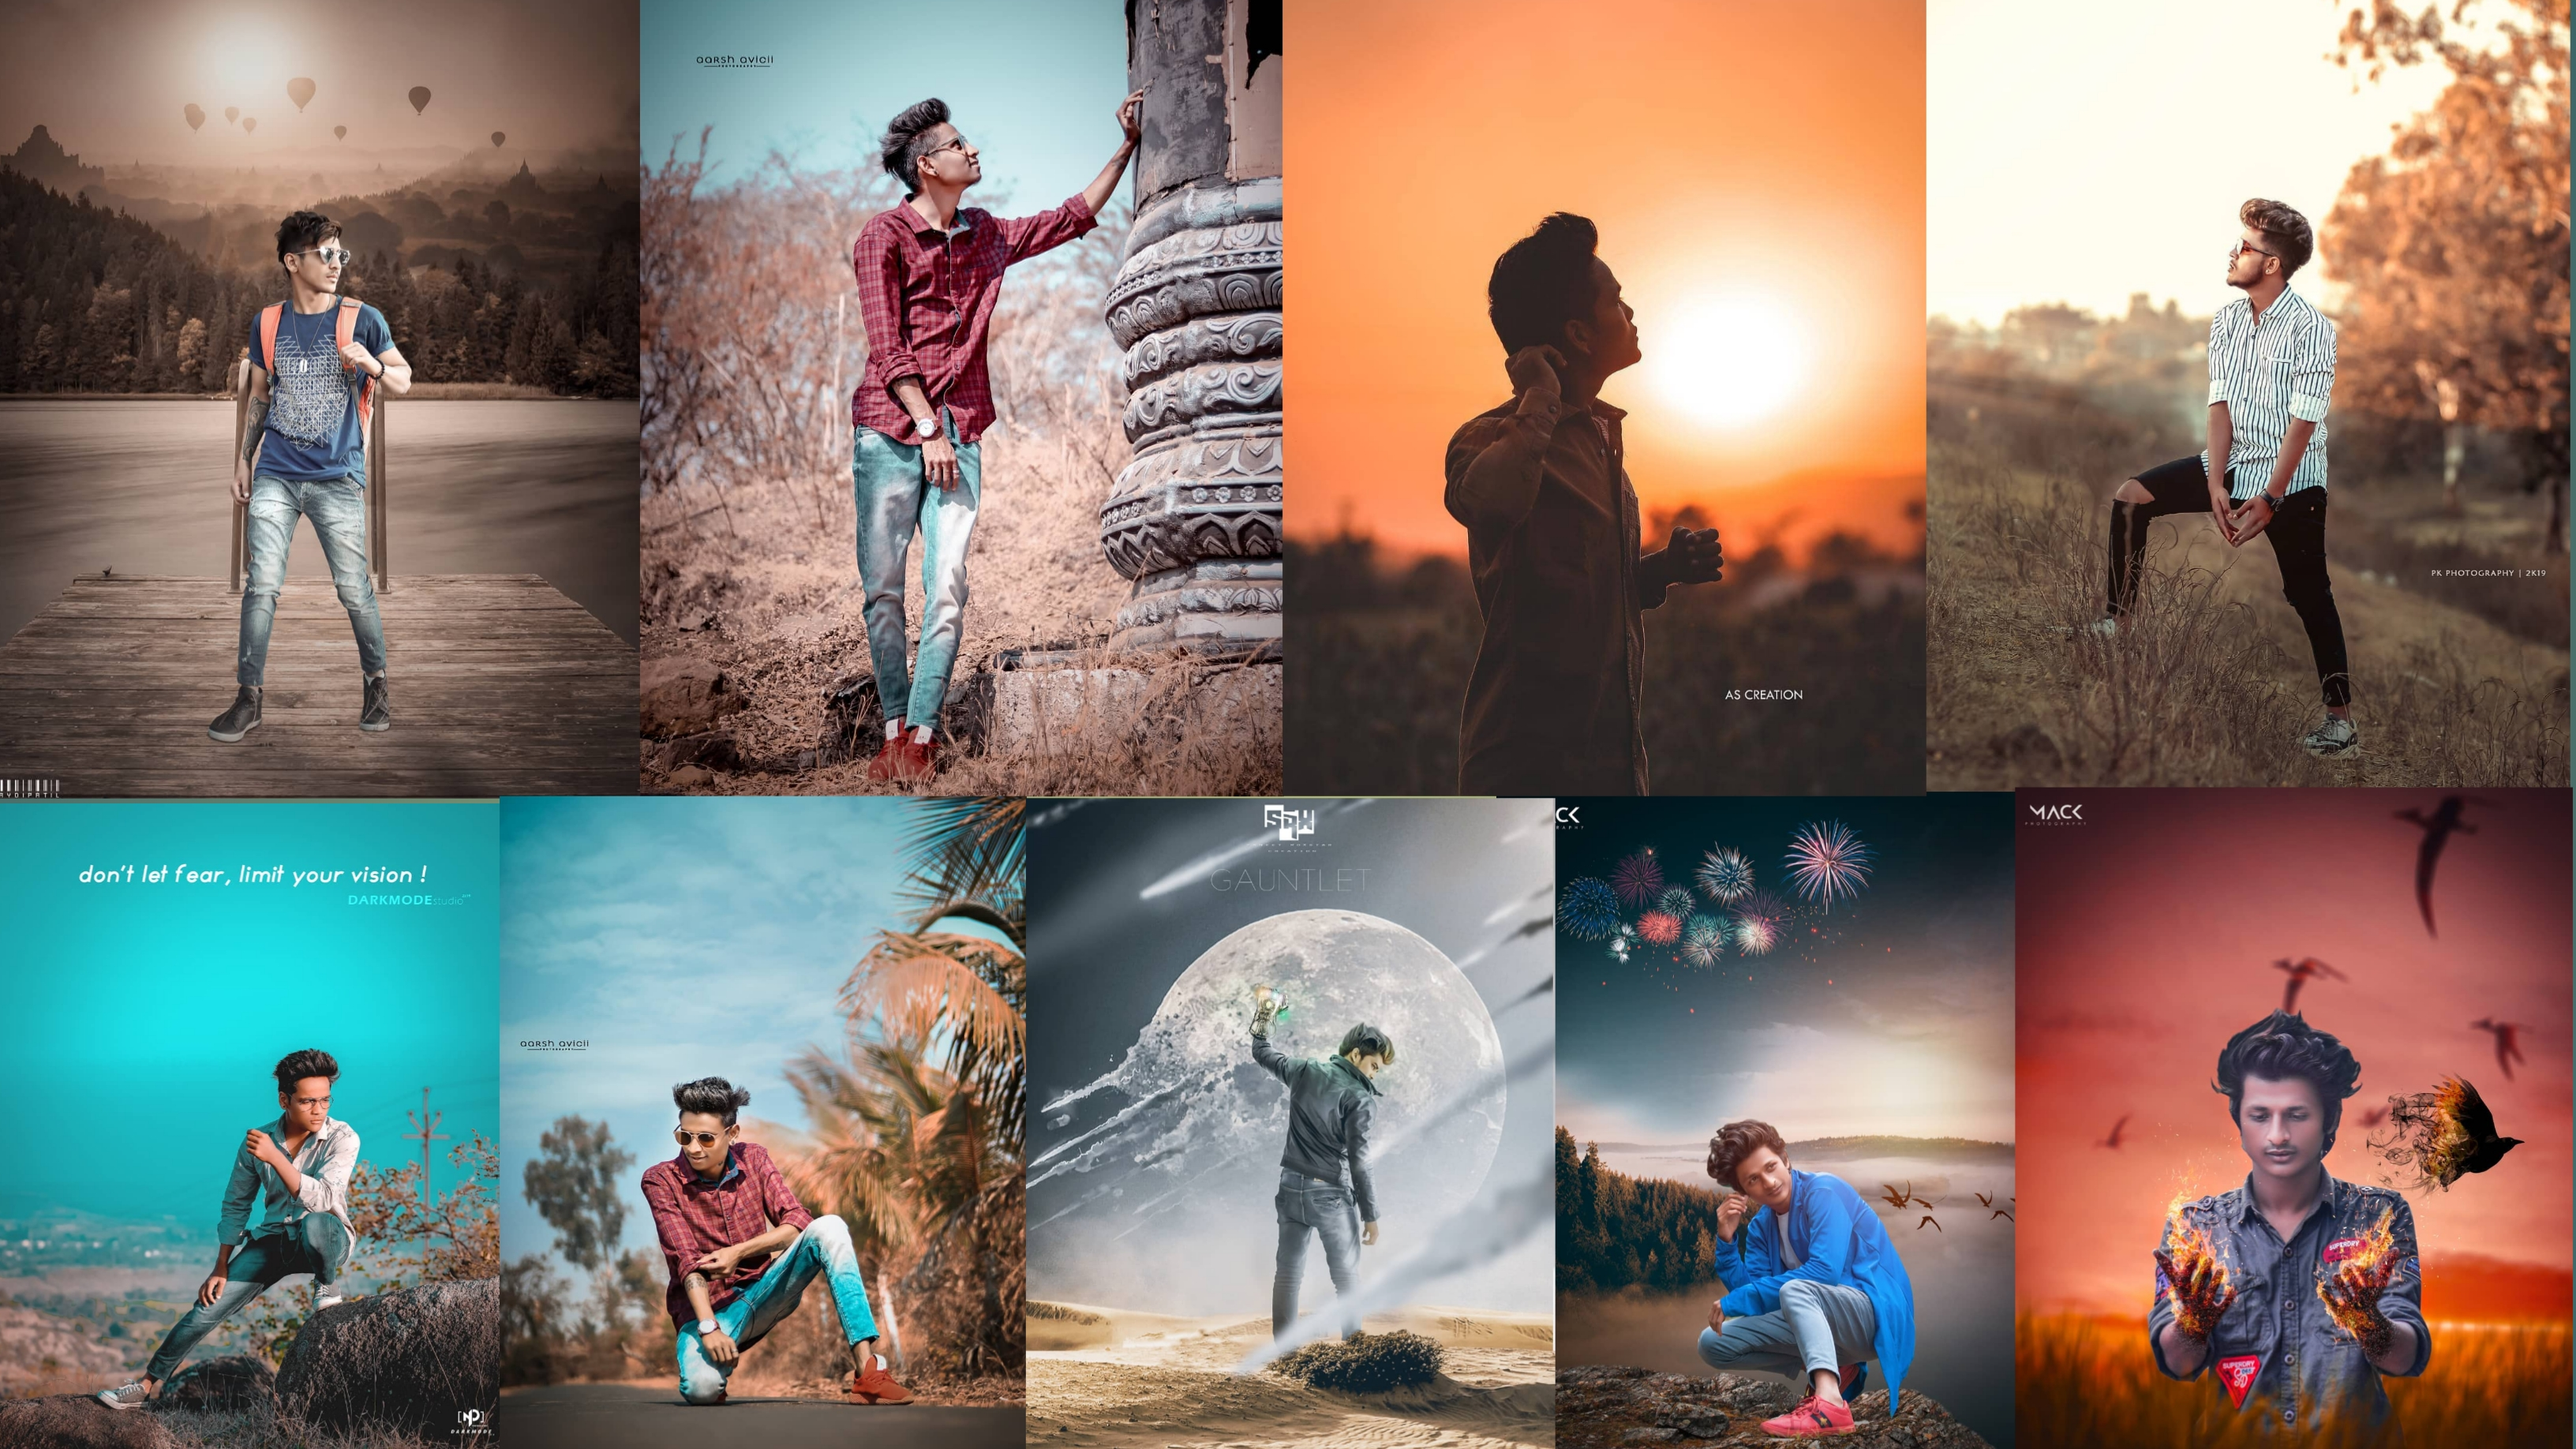 Background Images For Photoshop Editing Hd Zip File ✓ The